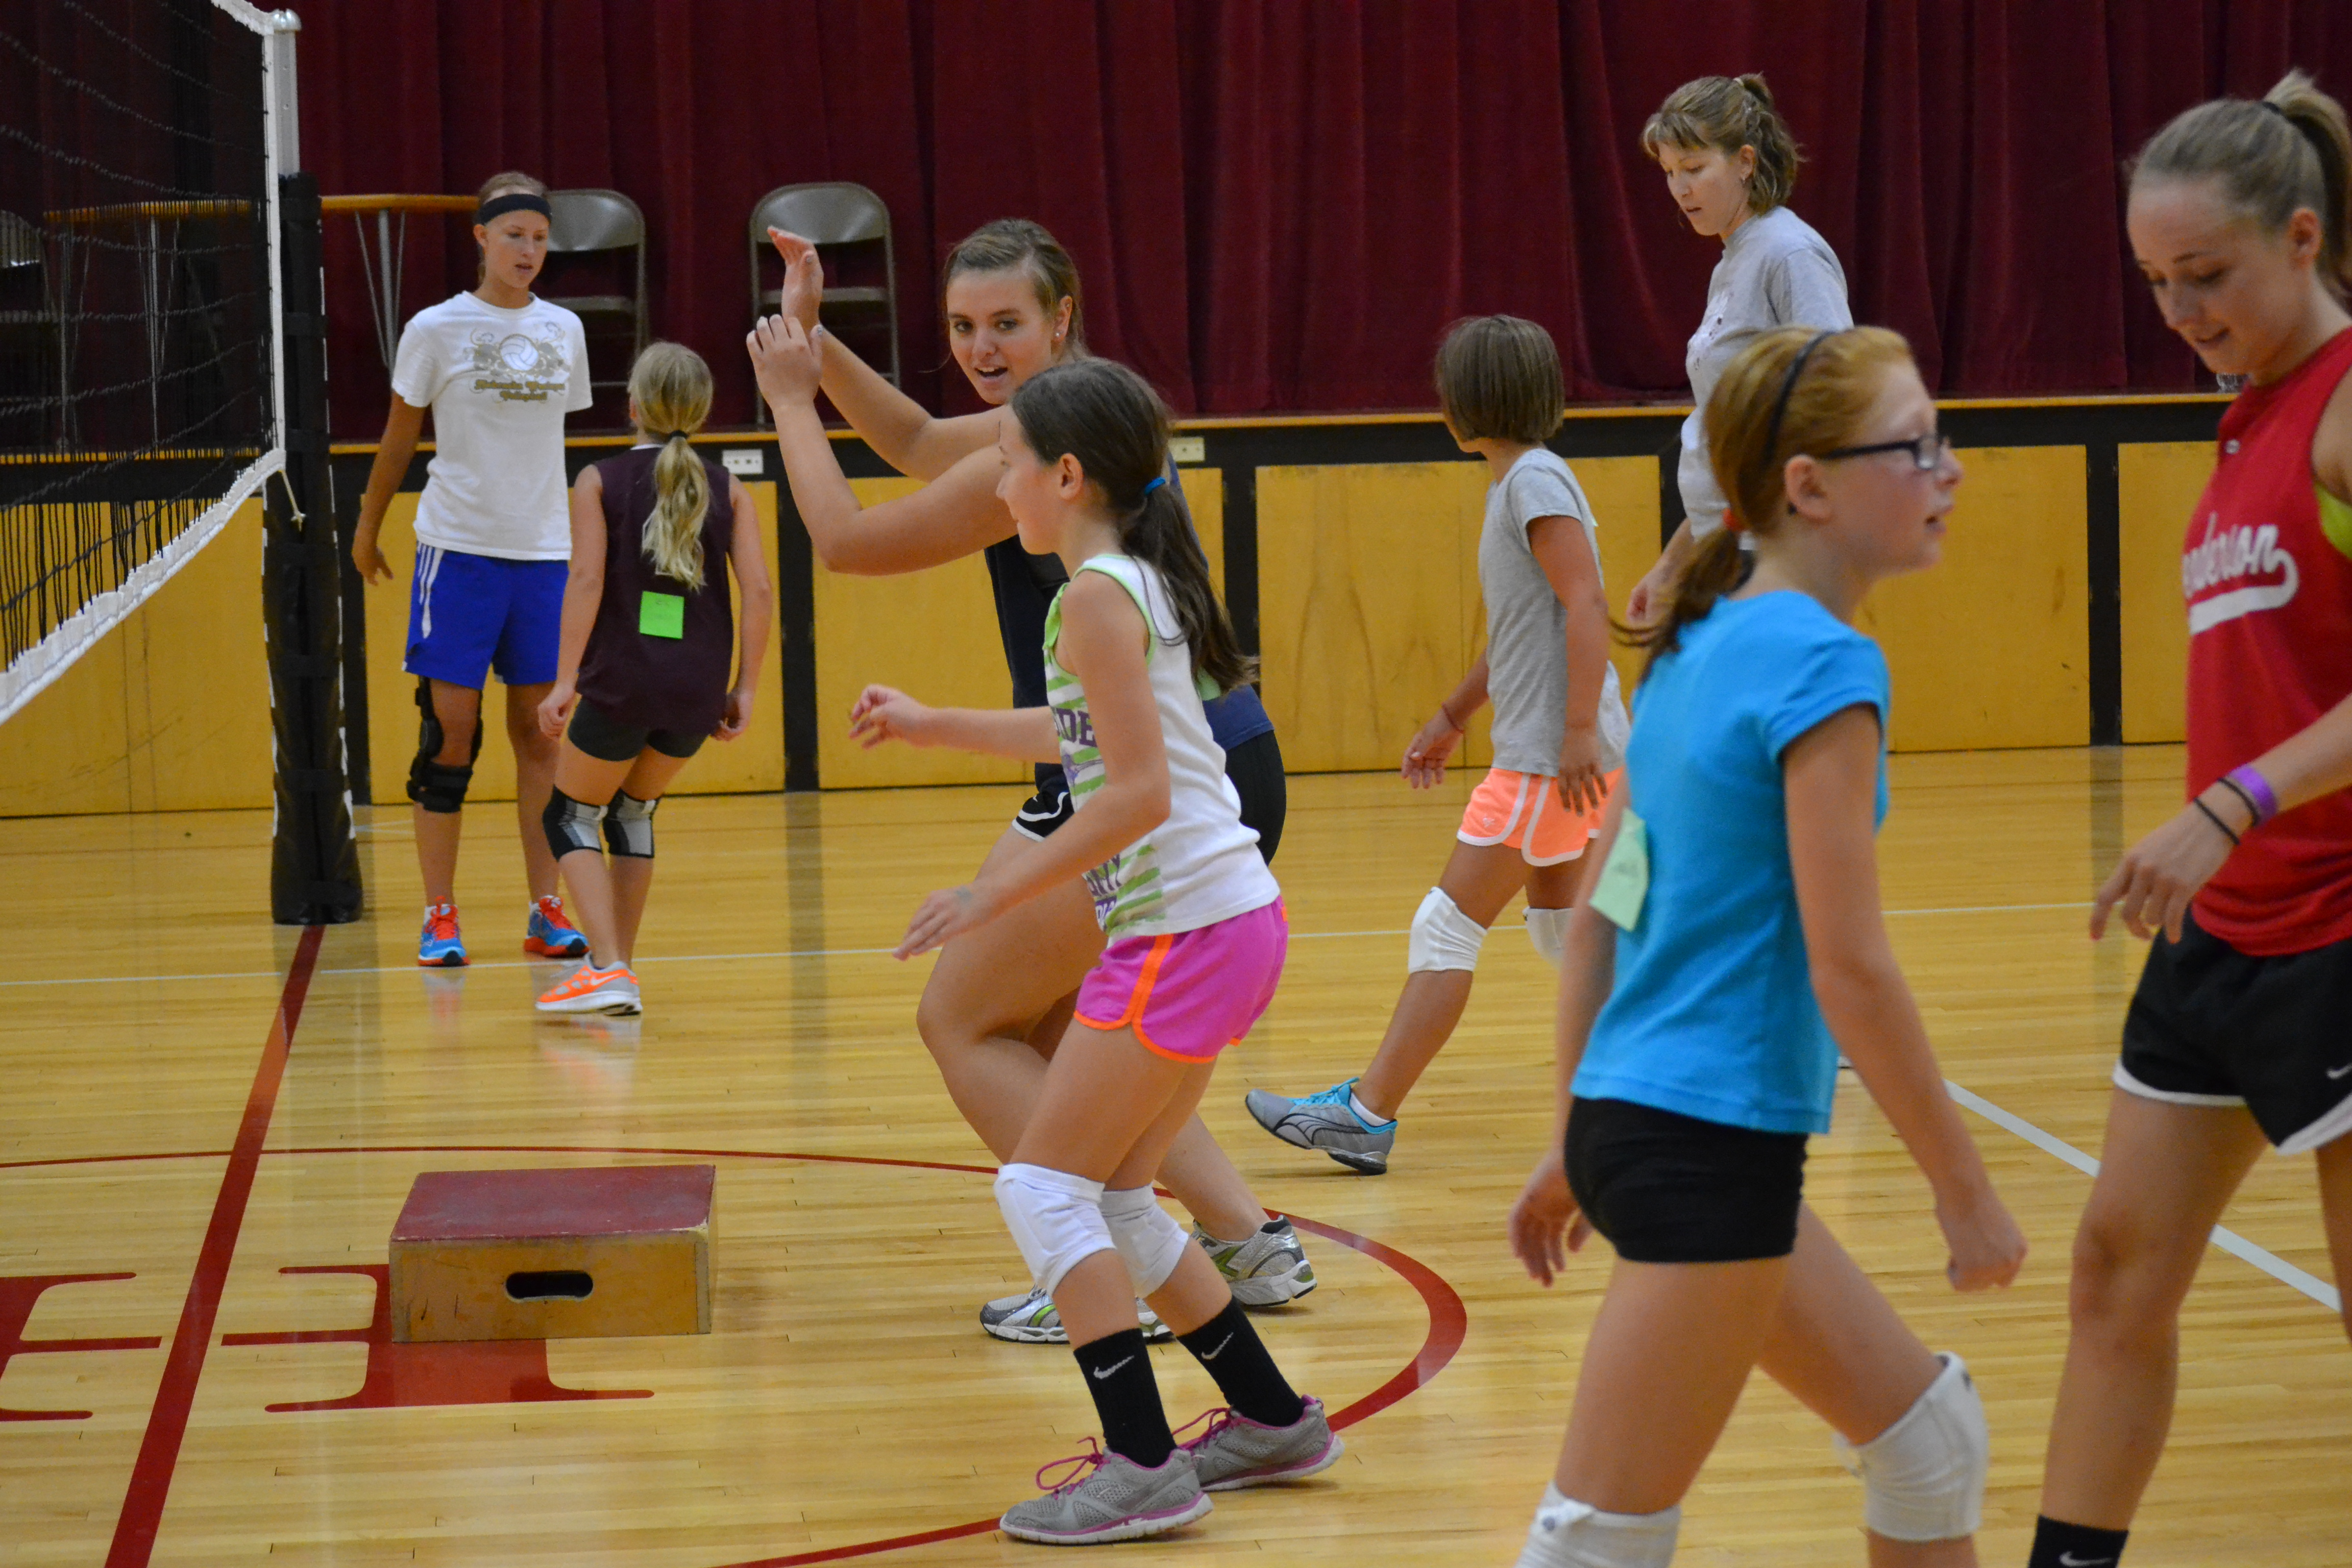 2016 Youth Volleyball League 4th-8th grade Beginner and intermediate – Hooptown.net